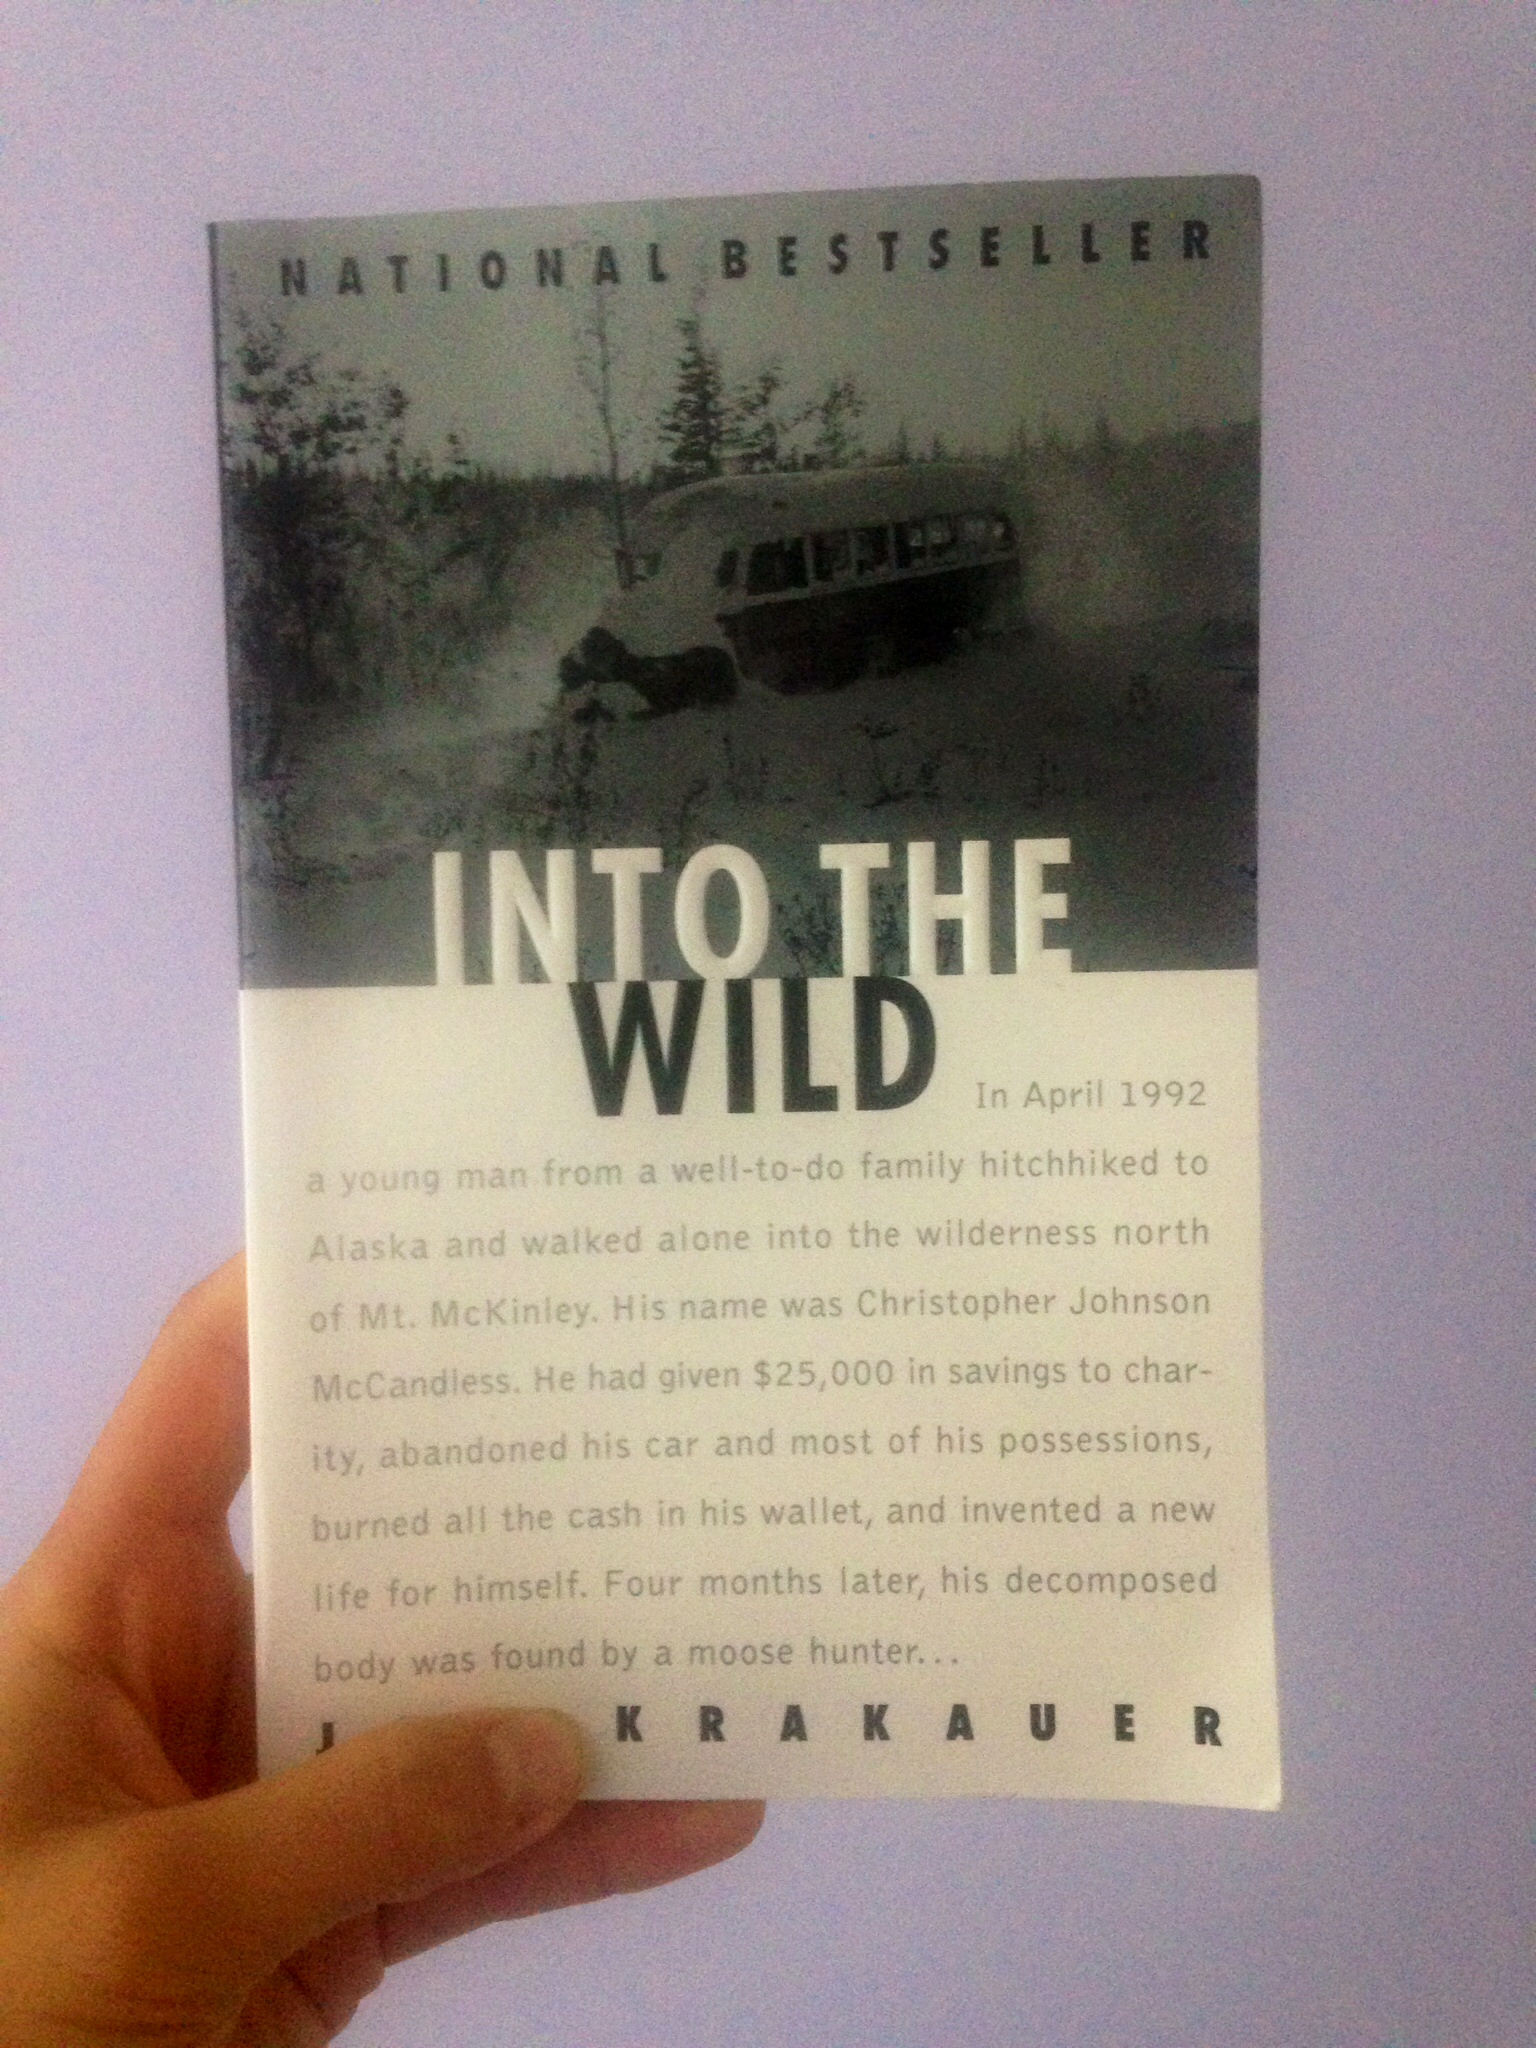 a perfect pre-backpacking read